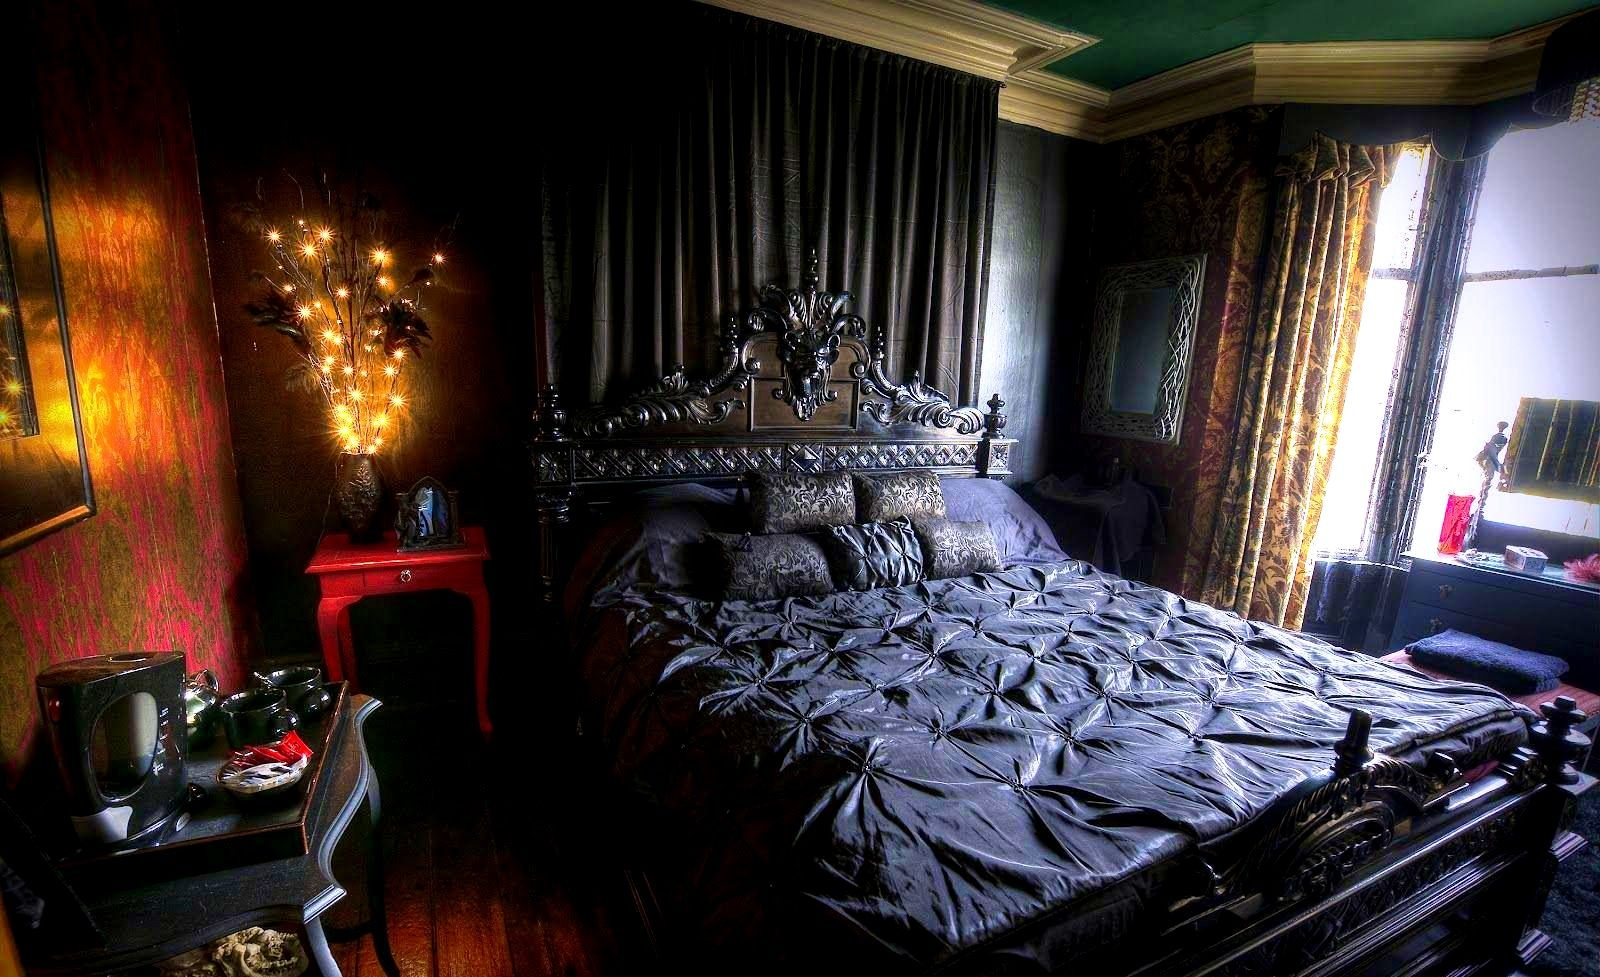 Bedroompleasant Image Of Girls Bedroom Sets Desks Gothic Style Twin Canopy Bed Desks Pleasant Imag Gothic Bedroom Furniture Gothic Decor Bedroom Gothic Bedroom